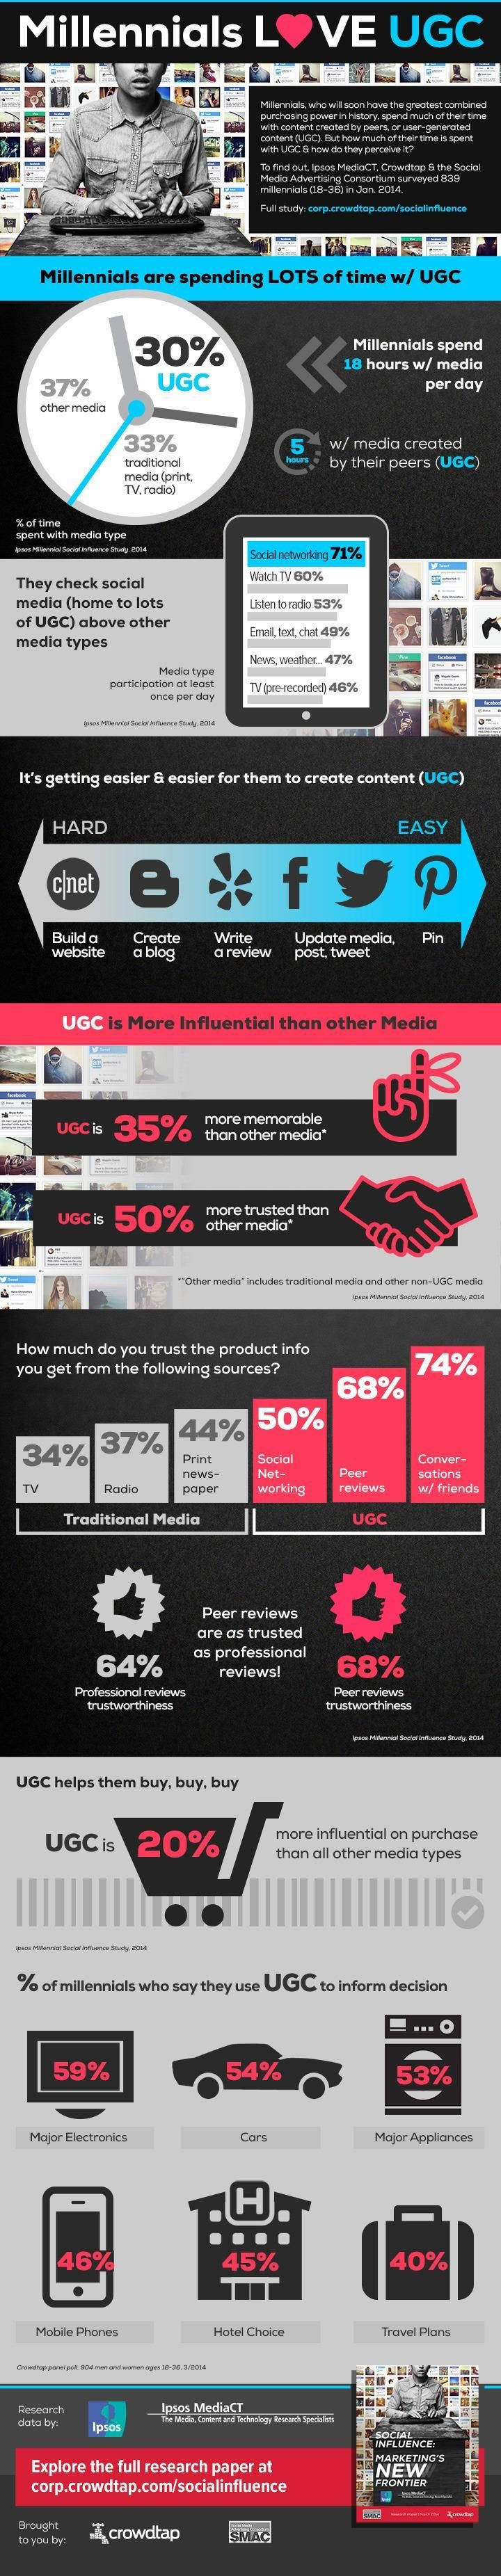 Millennials trust user-generated content 50% more than other media.